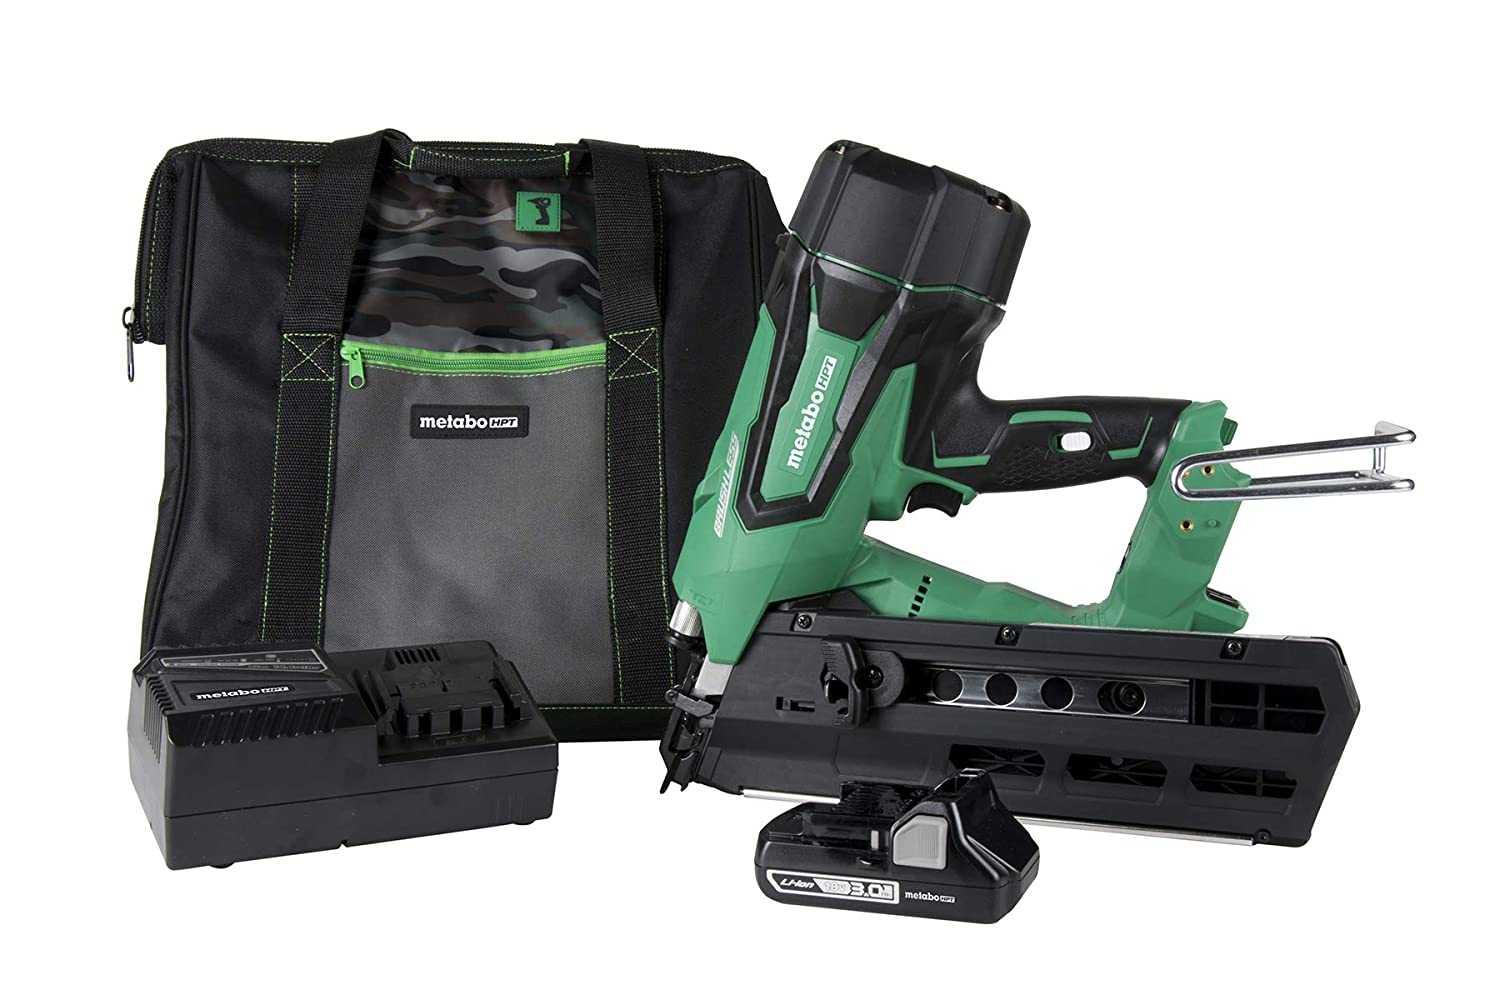 """Metabo HPT NR1890DR 18V Cordless Framing Nailer, Brushless Motor, 2"""" up to 3-1/2"""" Round Plastic Strip Nails, Compact 3.0 Ah Lithium Ion Battery, Lifetime Tool Warranty"""